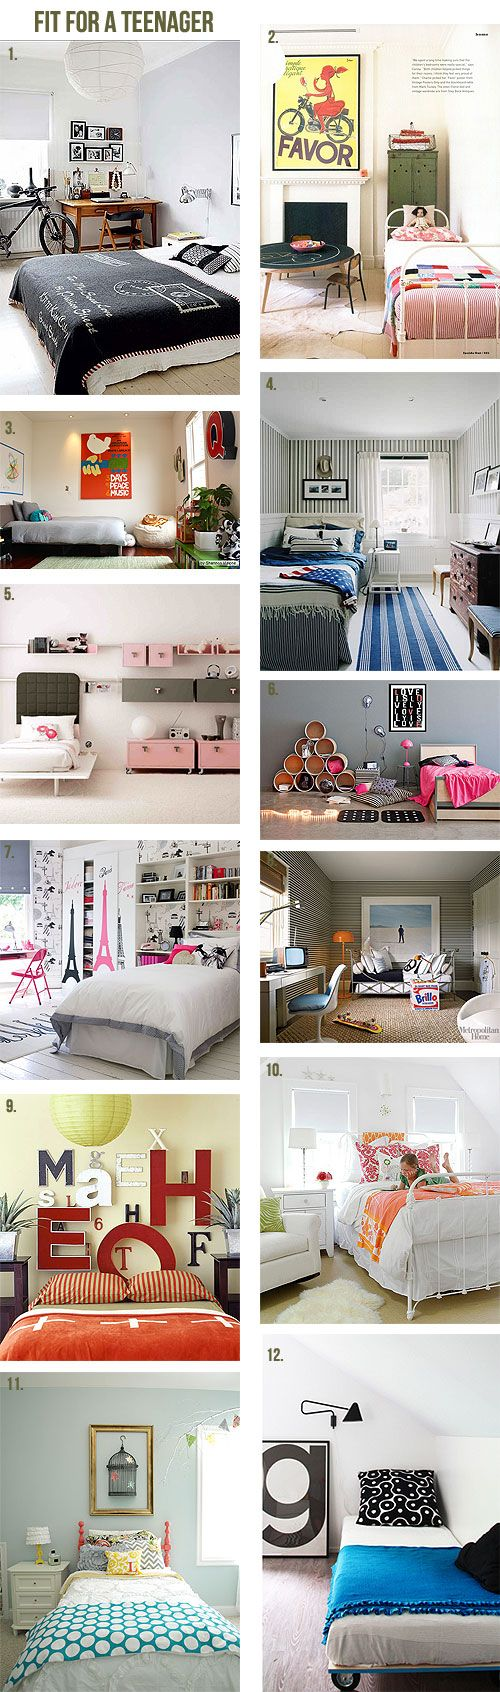 Teenage rooms they'll love! I would die to have any of these bedrooms